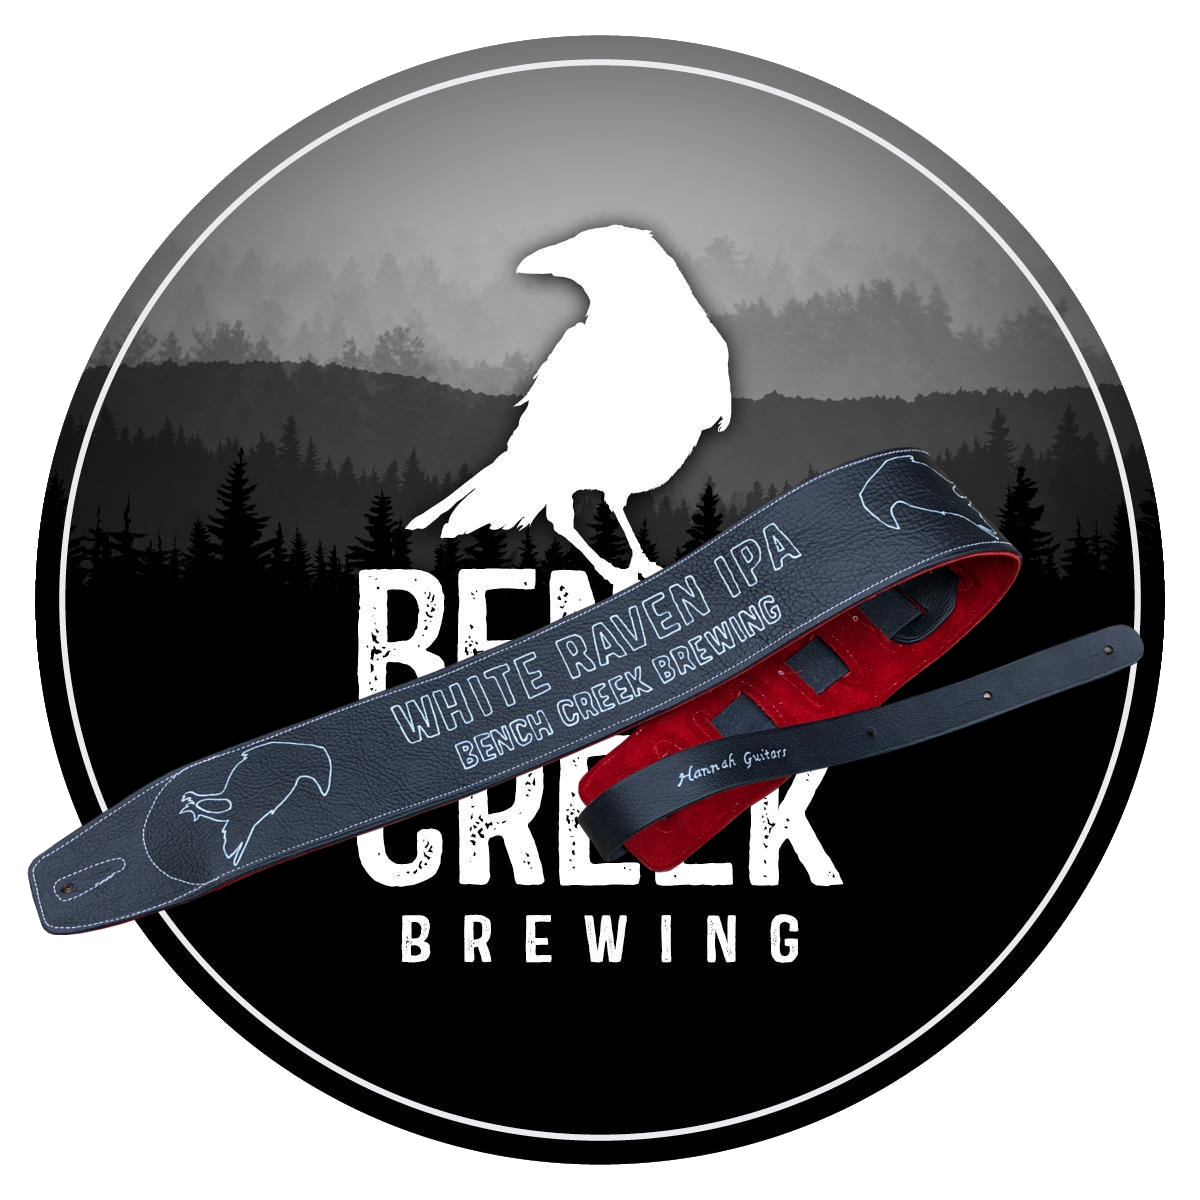 Bench Creek Logo and Strap3